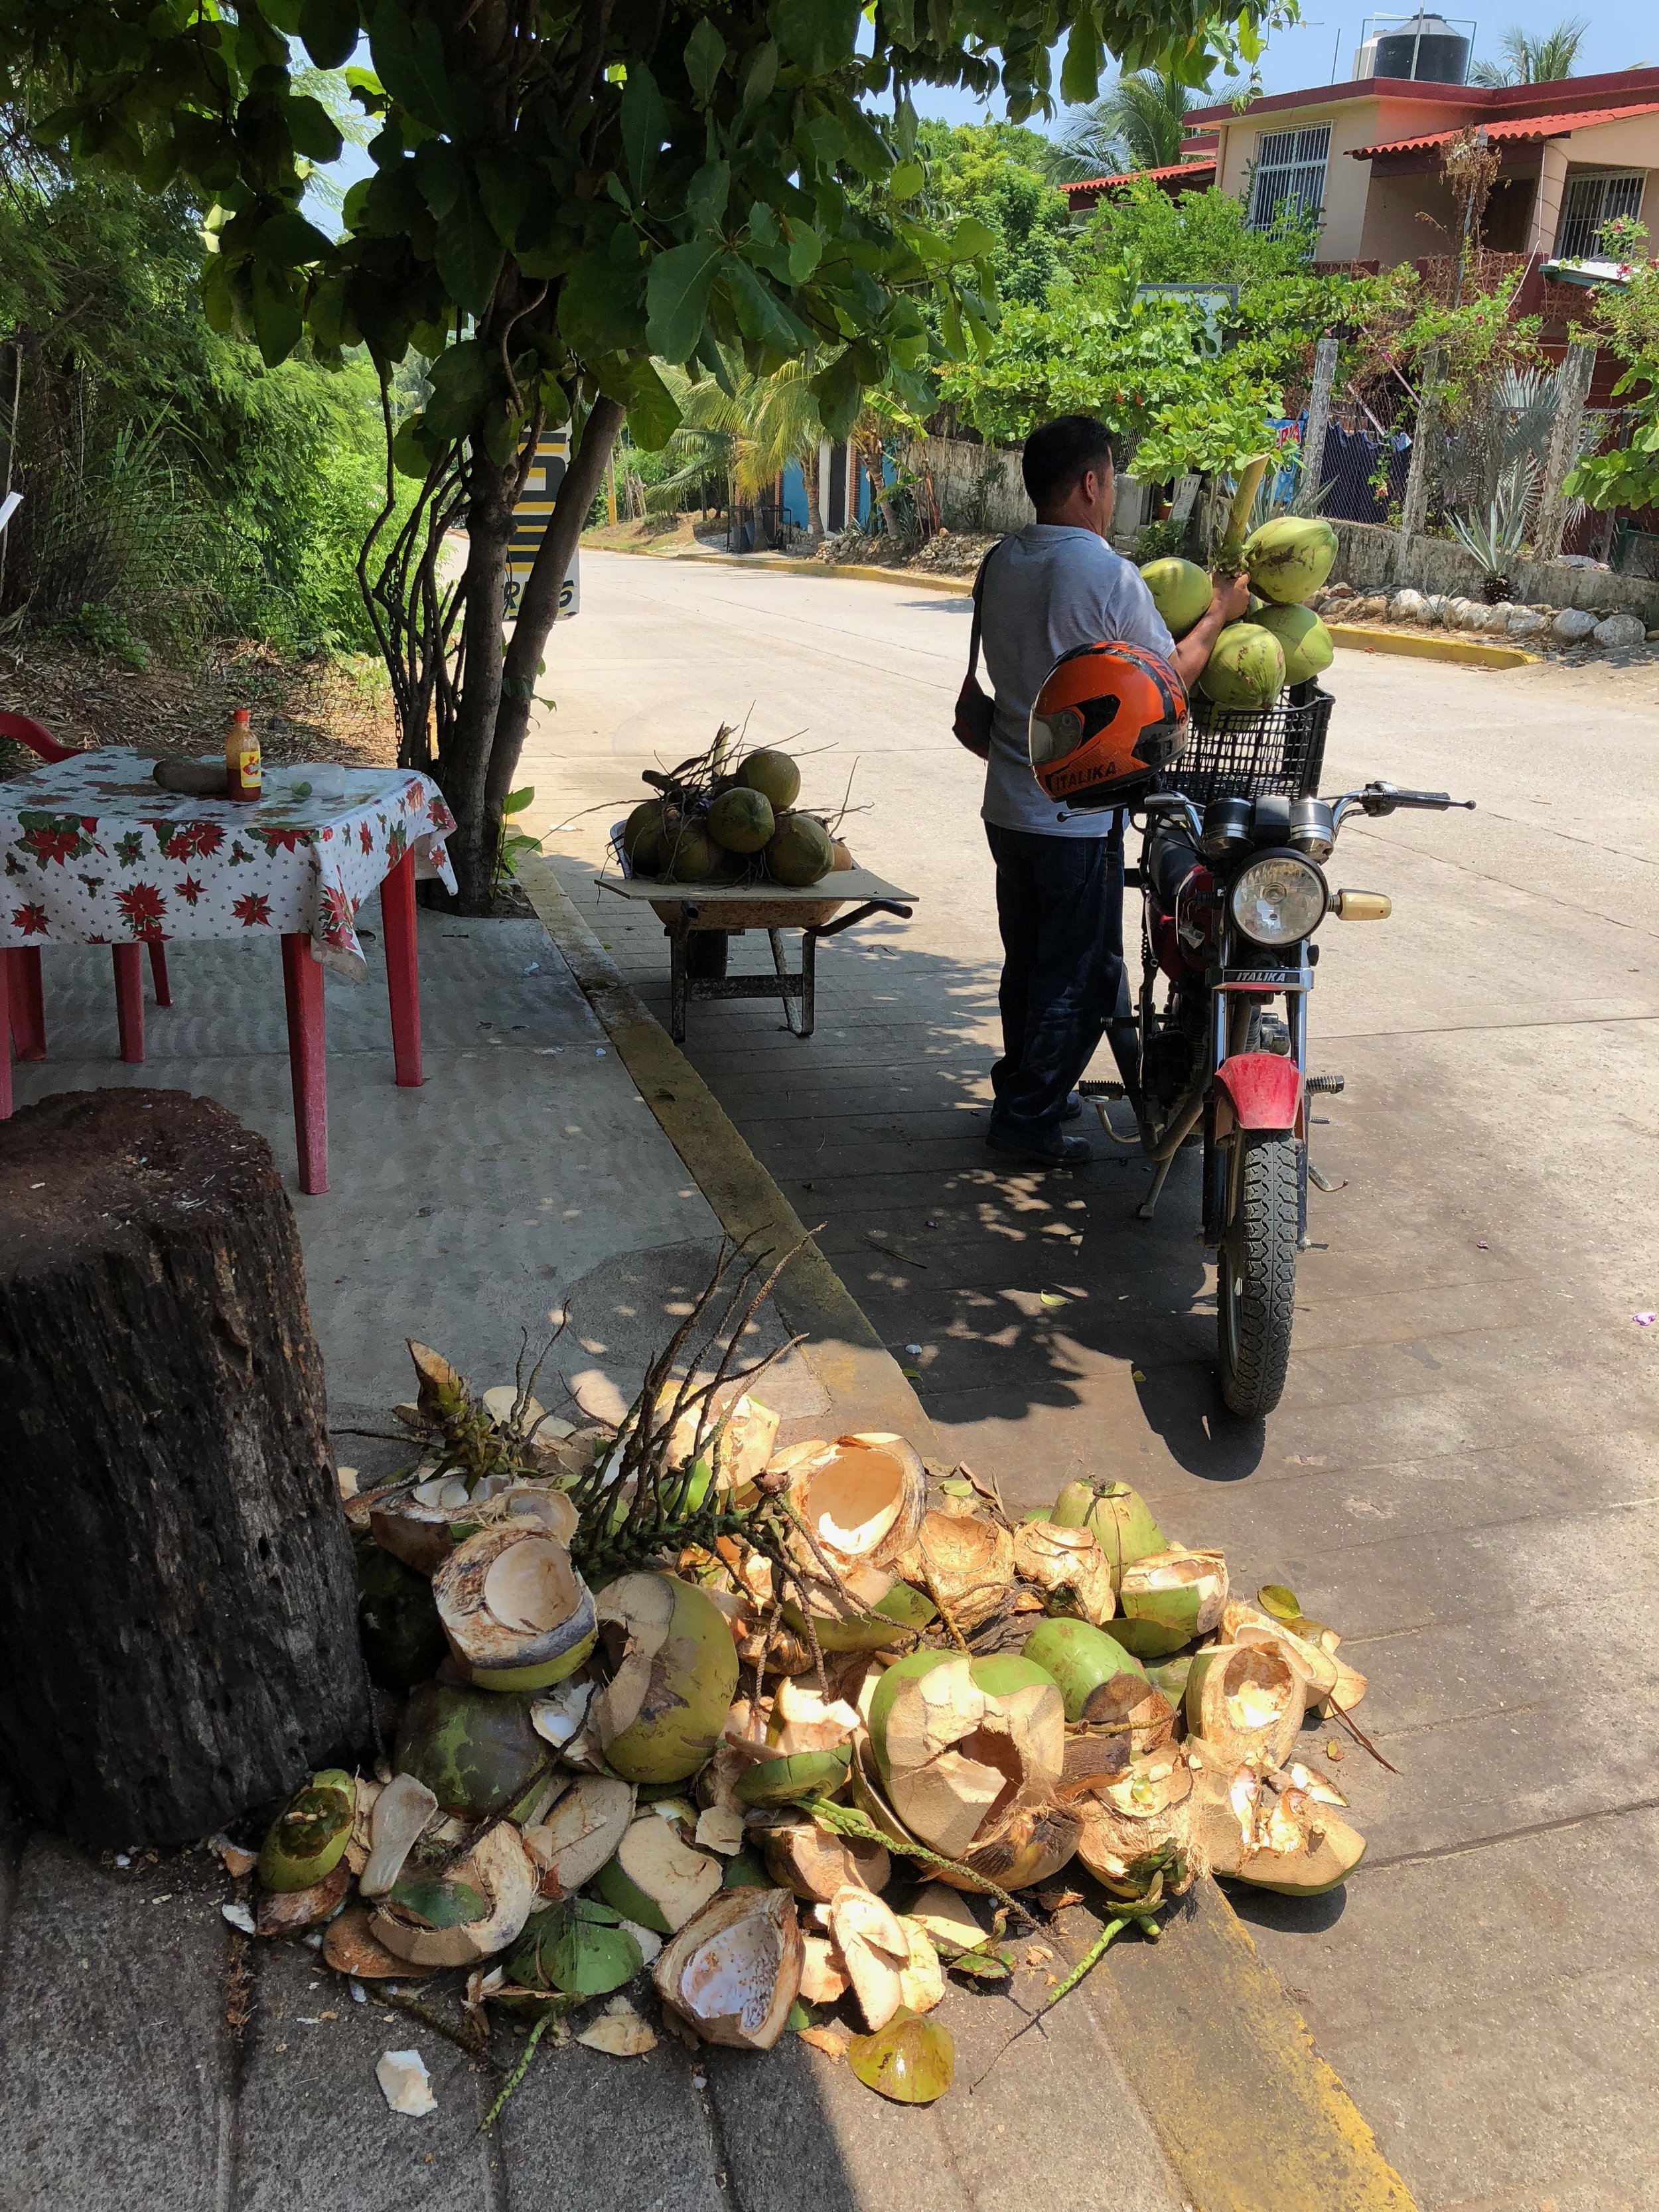 This man was buying a bunch of coconuts to take home with him. In the foreground are the day's coconut scraps.